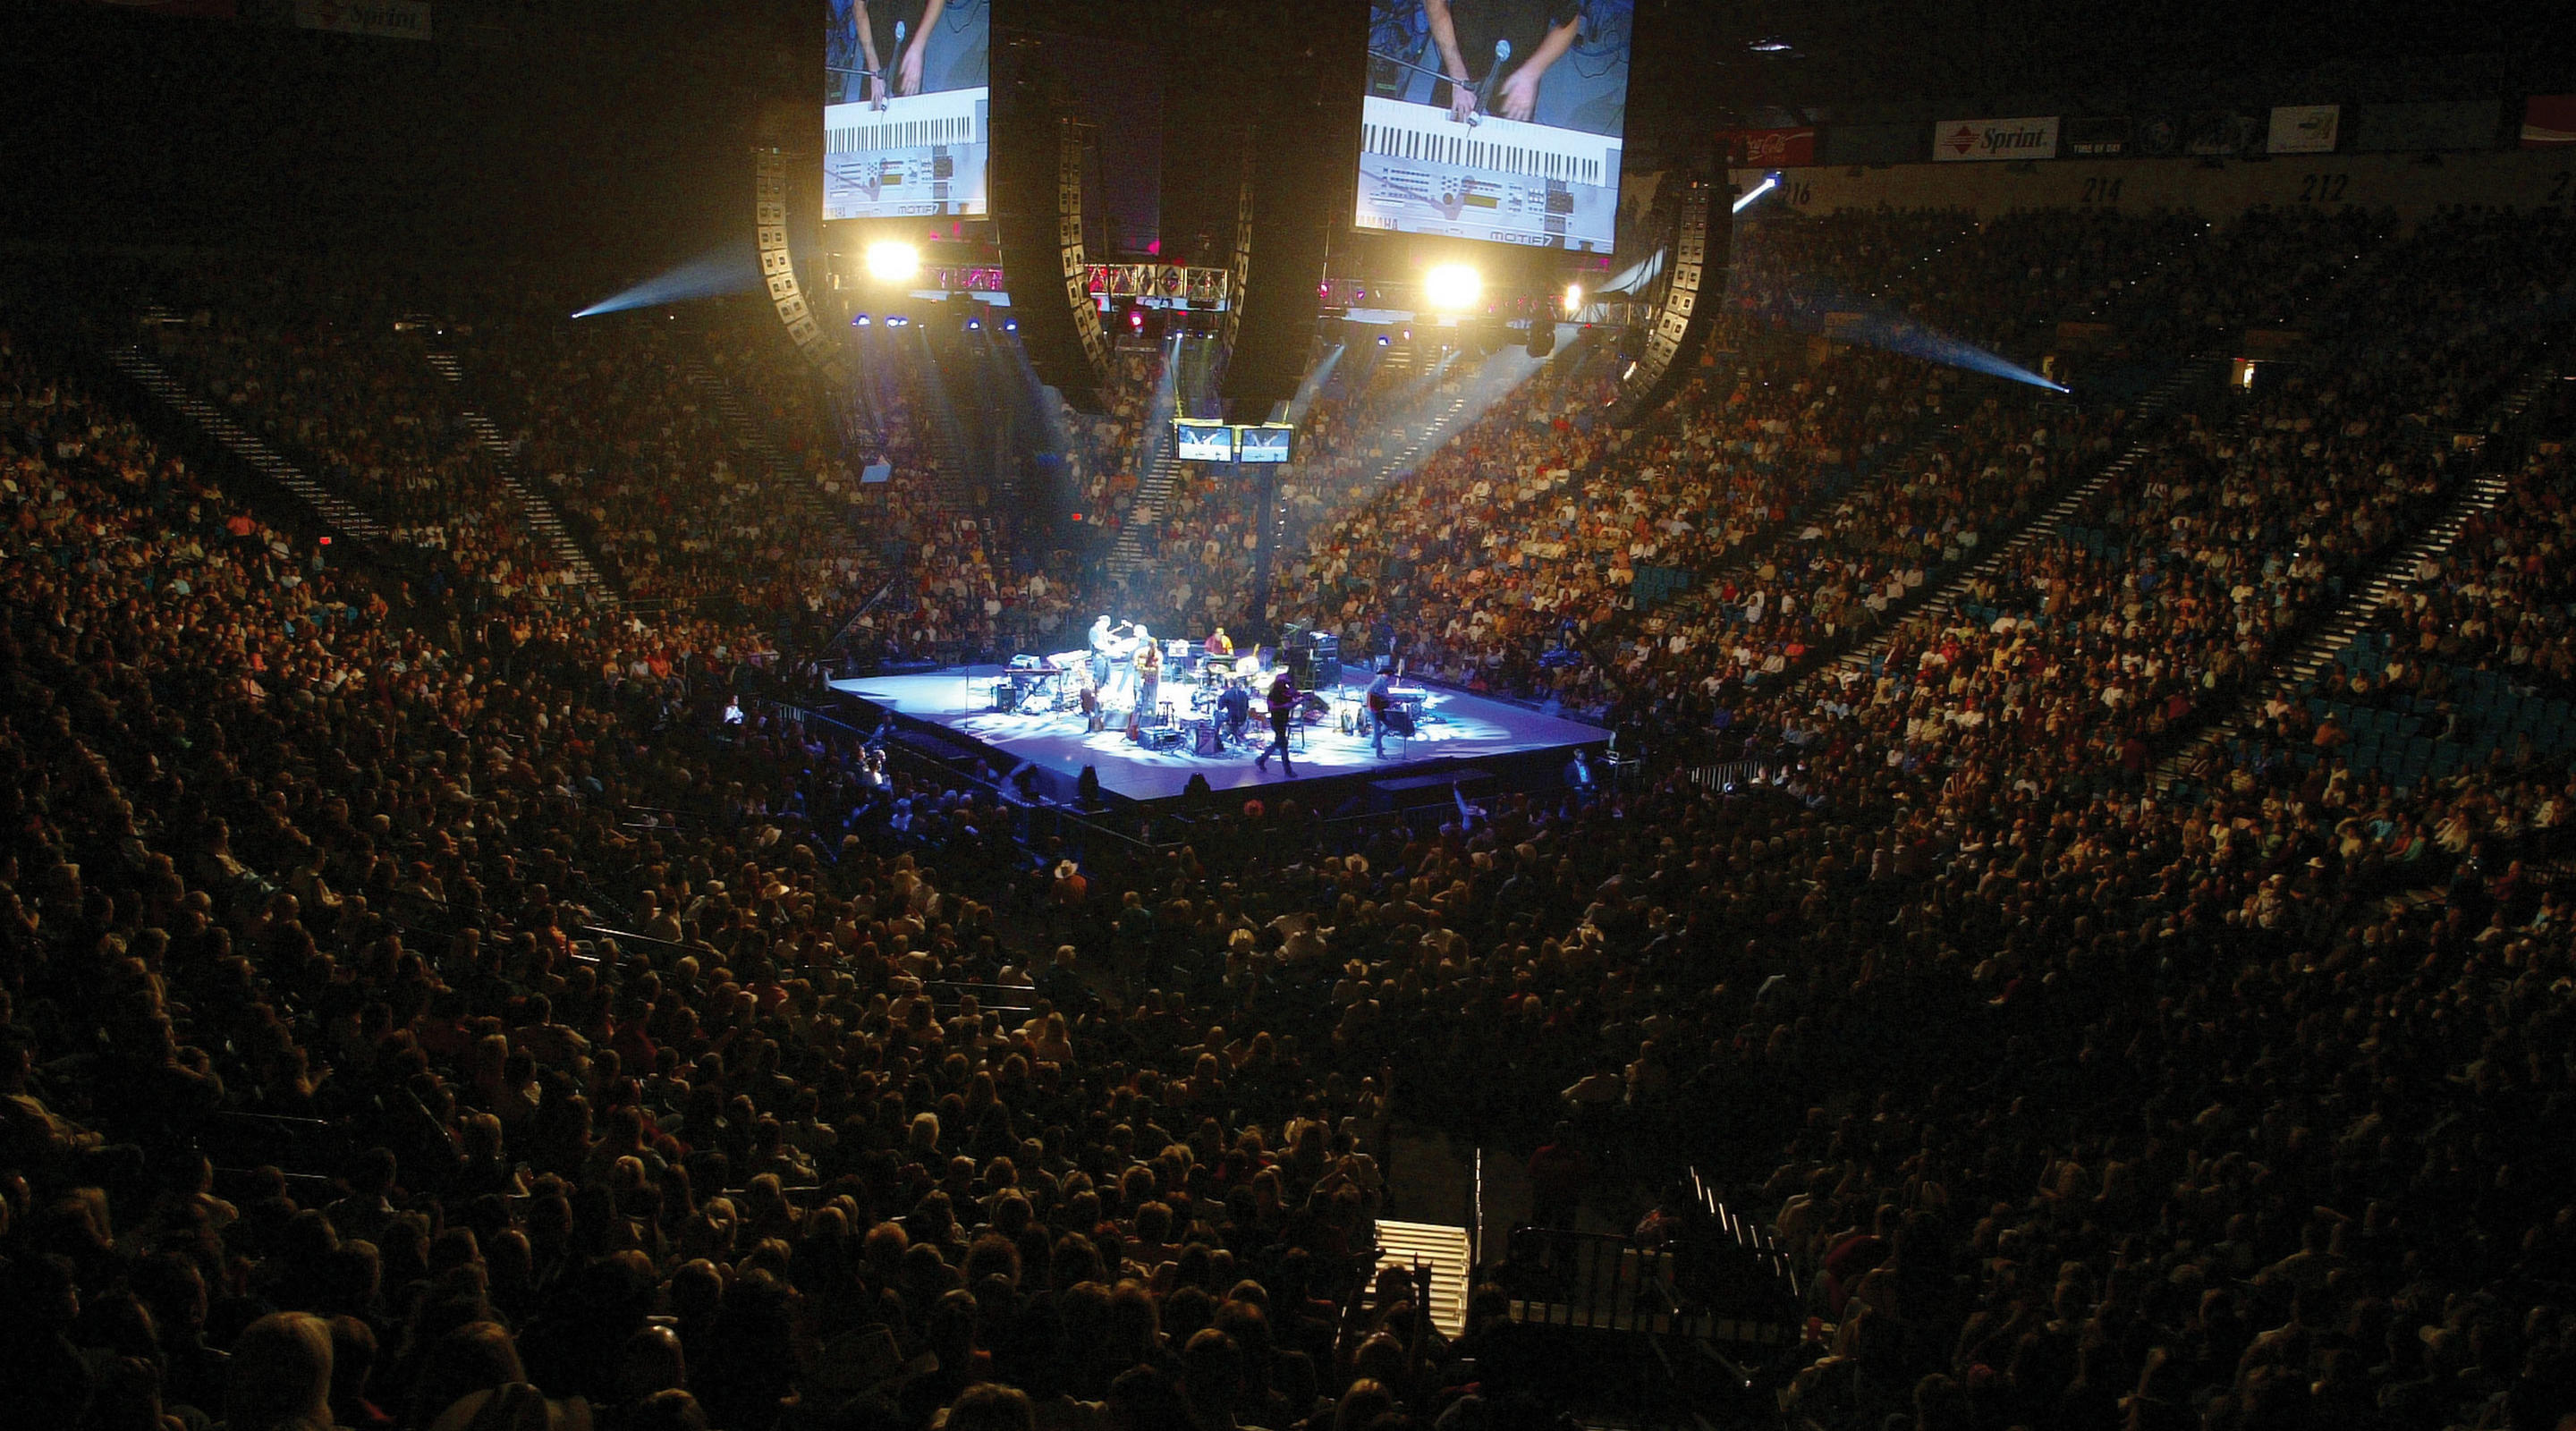 Mgm Grand Garden Arena Box Office Telephone Number Garden Ftempo